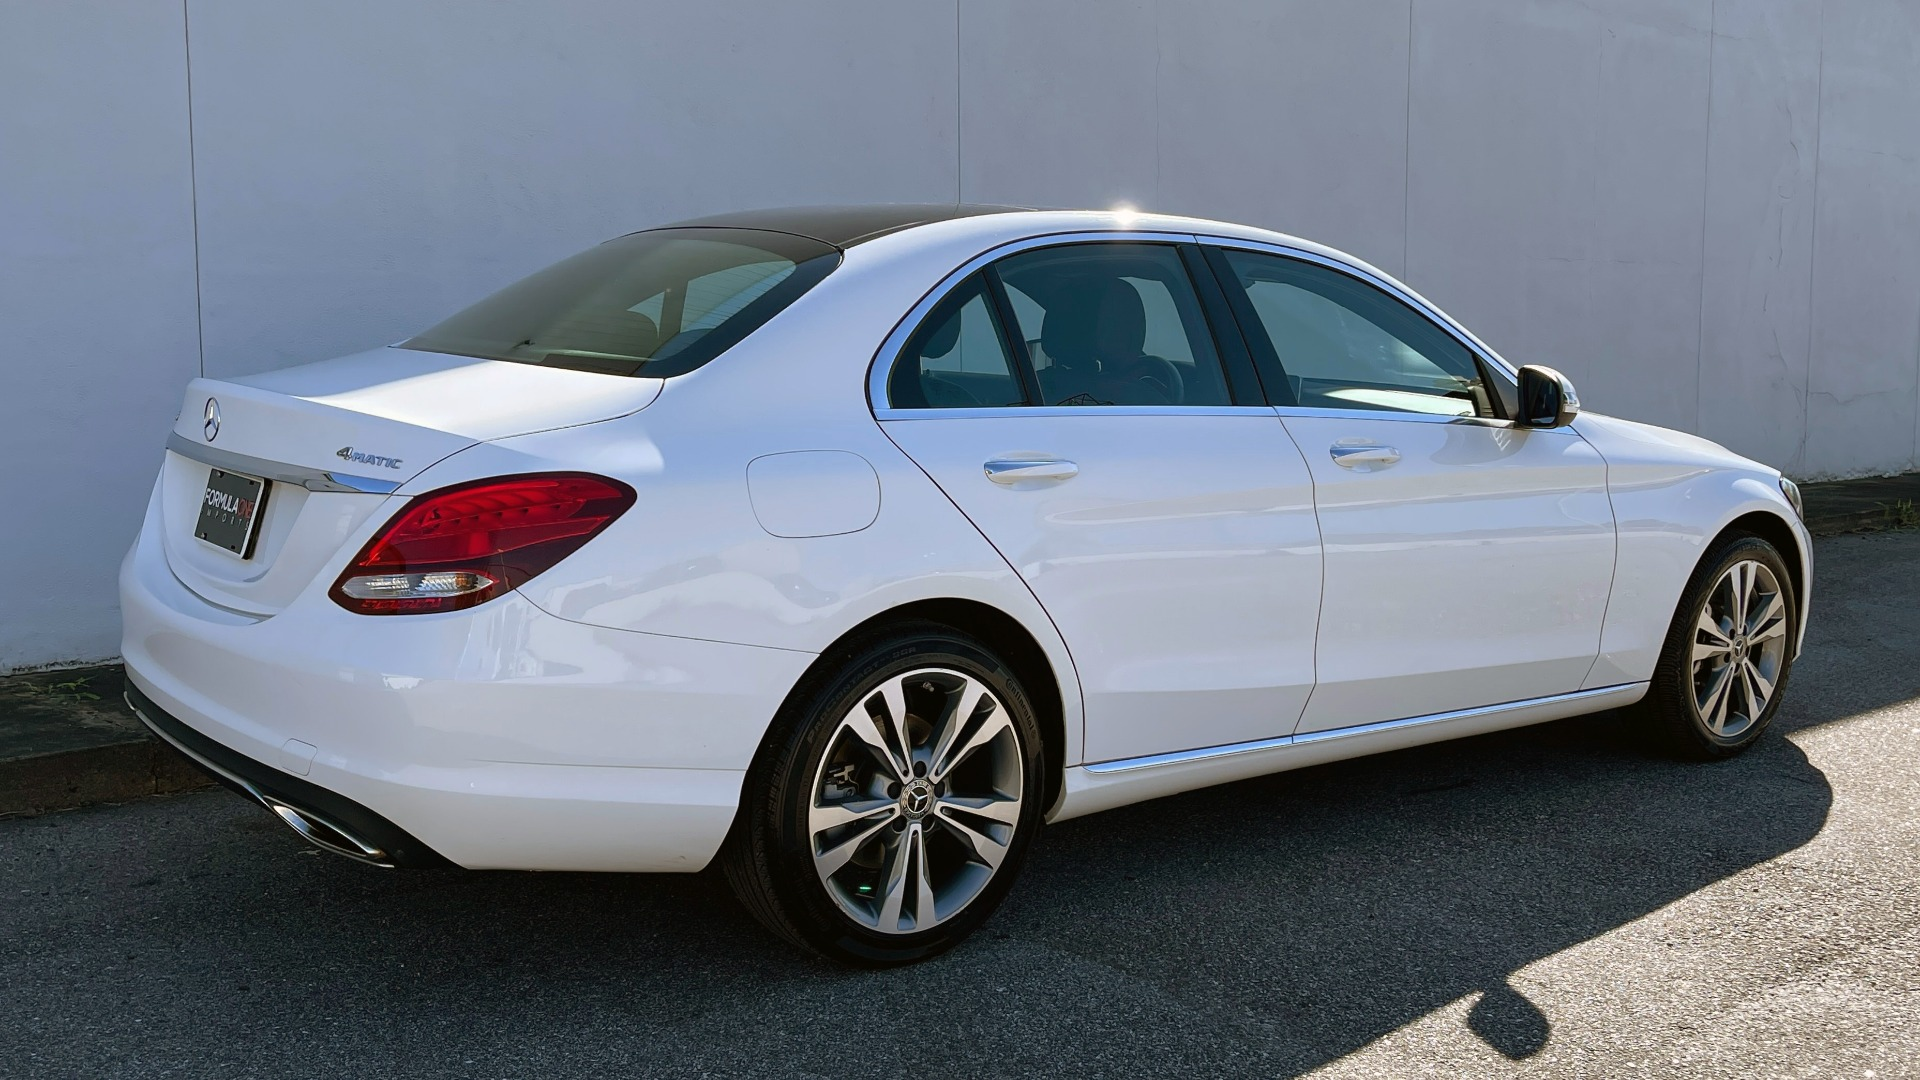 Used 2018 Mercedes-Benz C-CLASS C 300 4MATIC PREMIUM / SMARTPHONE INTEG / PANO-ROOF / REARVIEW for sale $30,995 at Formula Imports in Charlotte NC 28227 8